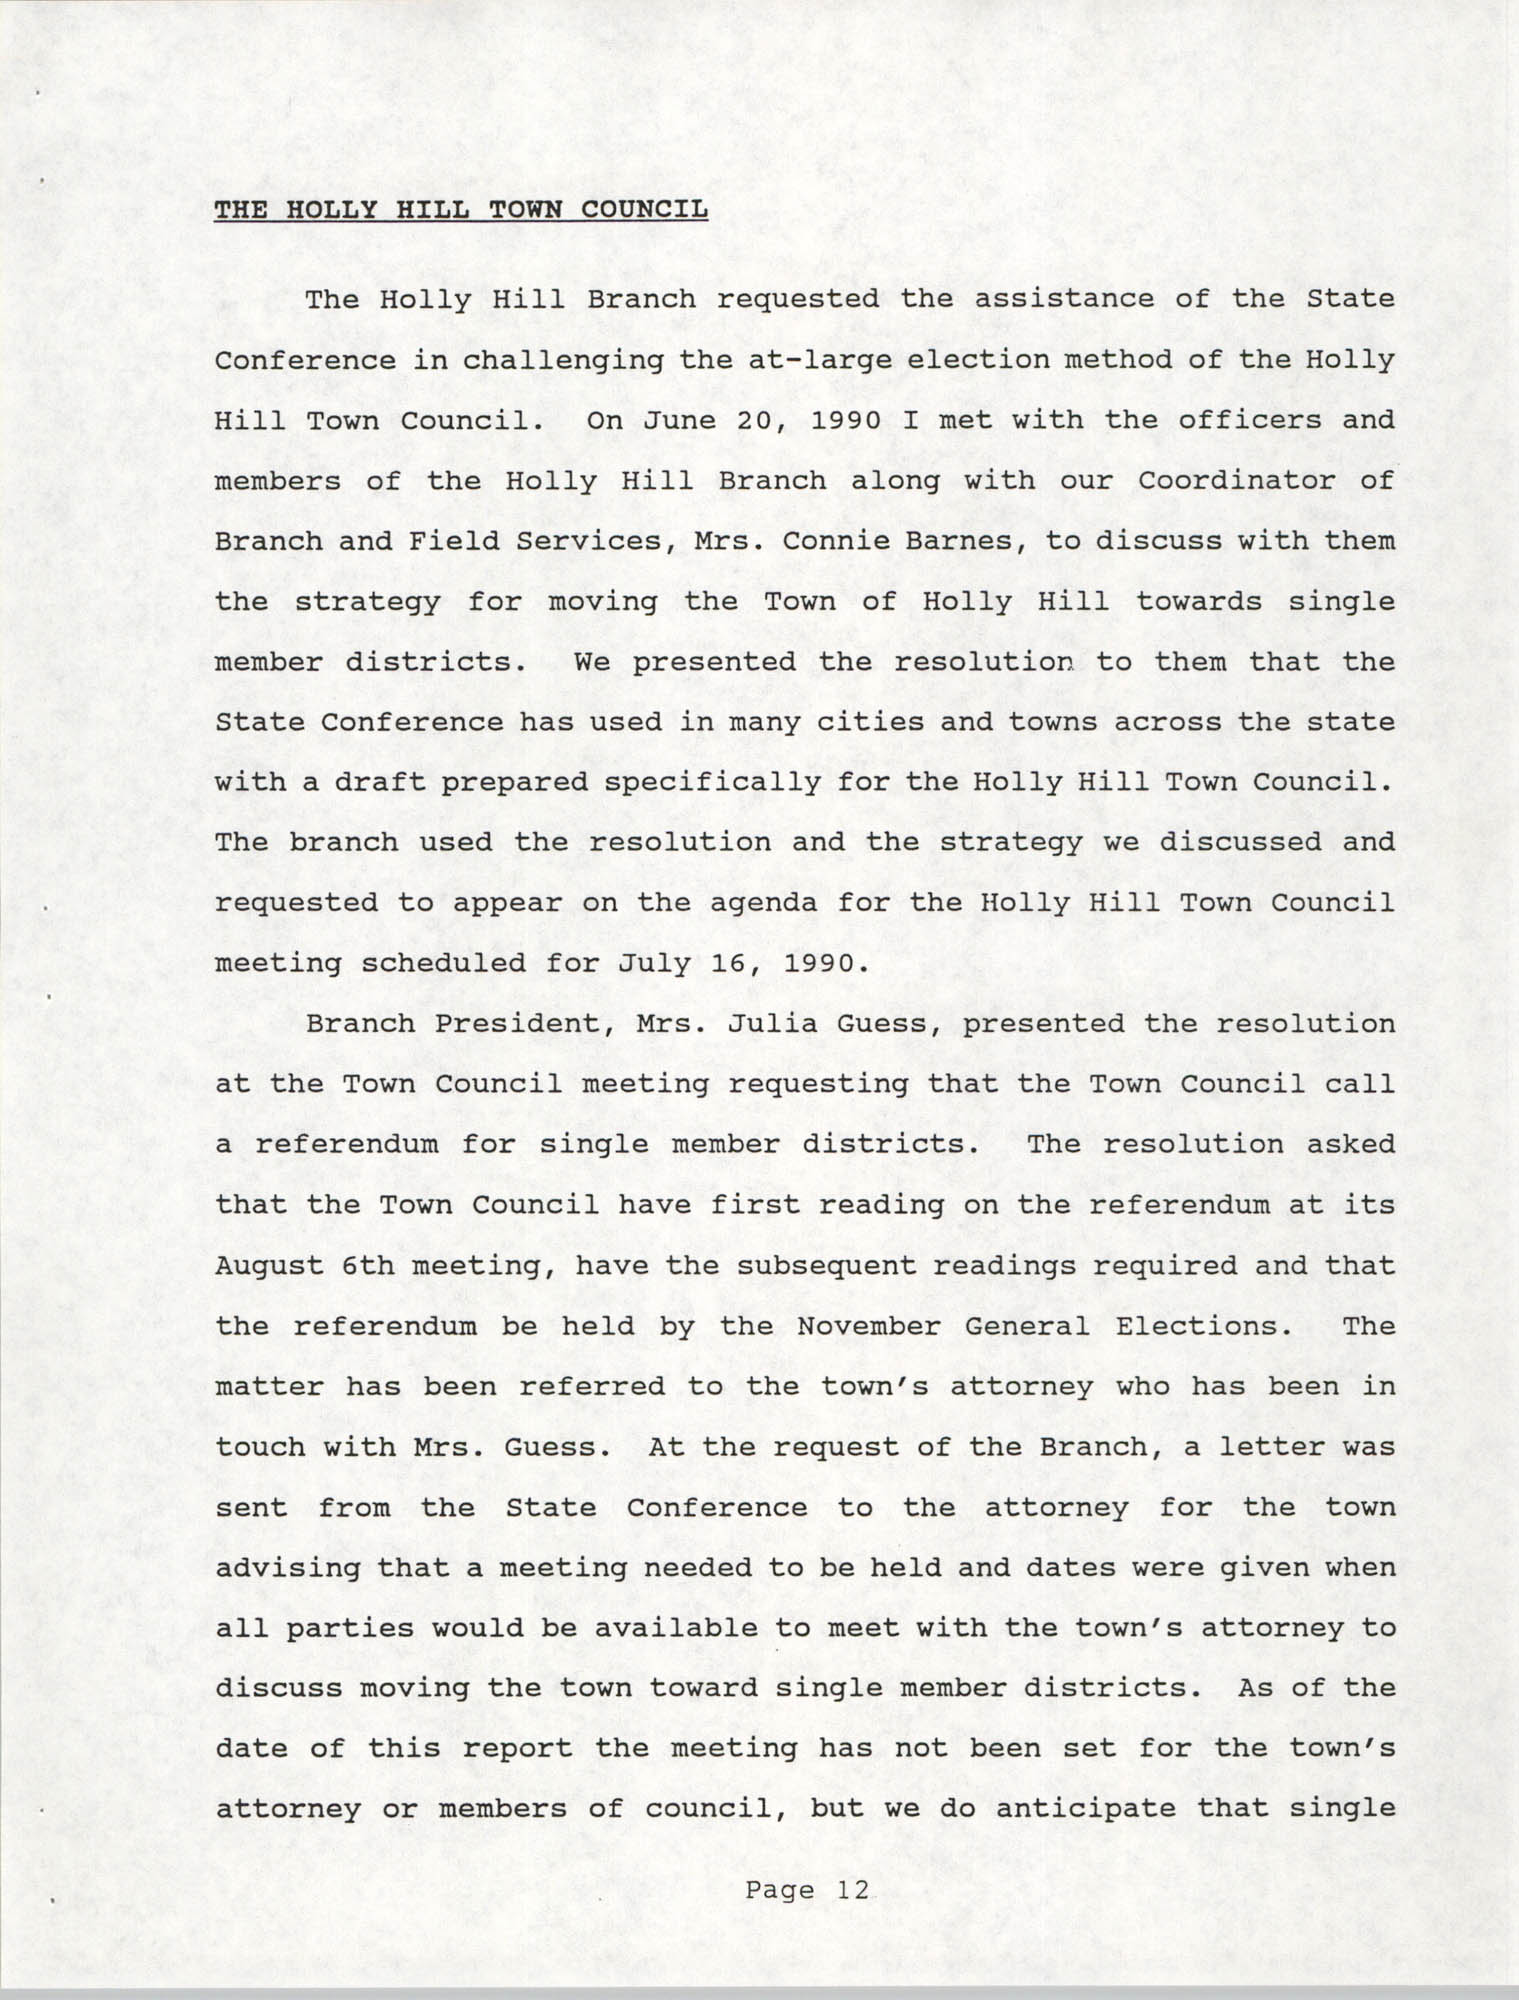 South Carolina Conference of Branches of the NAACP, 1990 Annual Report, Part One, Page 12